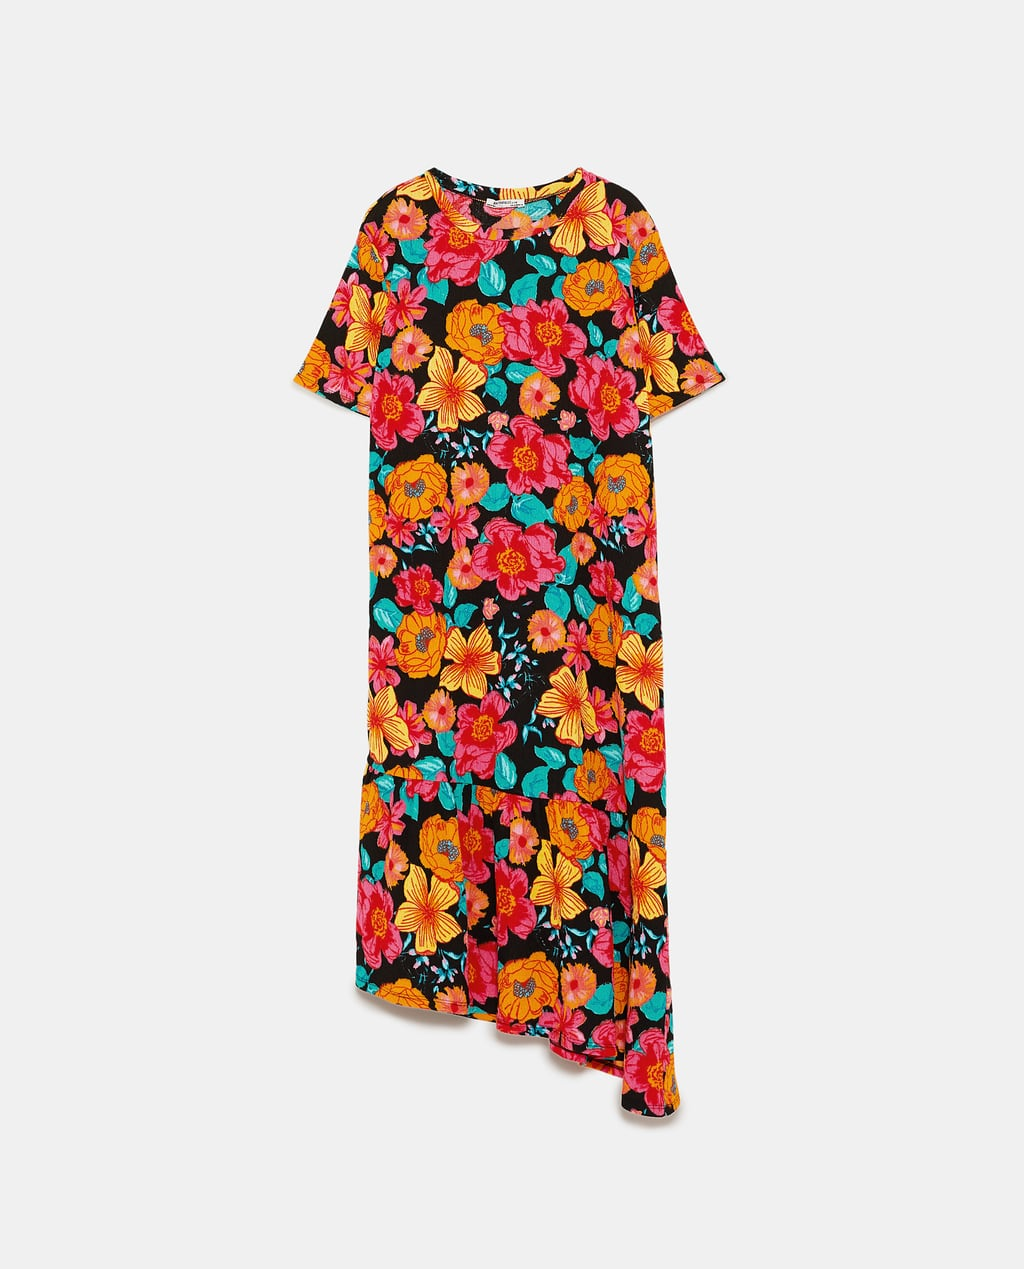 - TEXTURED DRESS WITH RUFFLED HEMDETAILS17.99 CAD